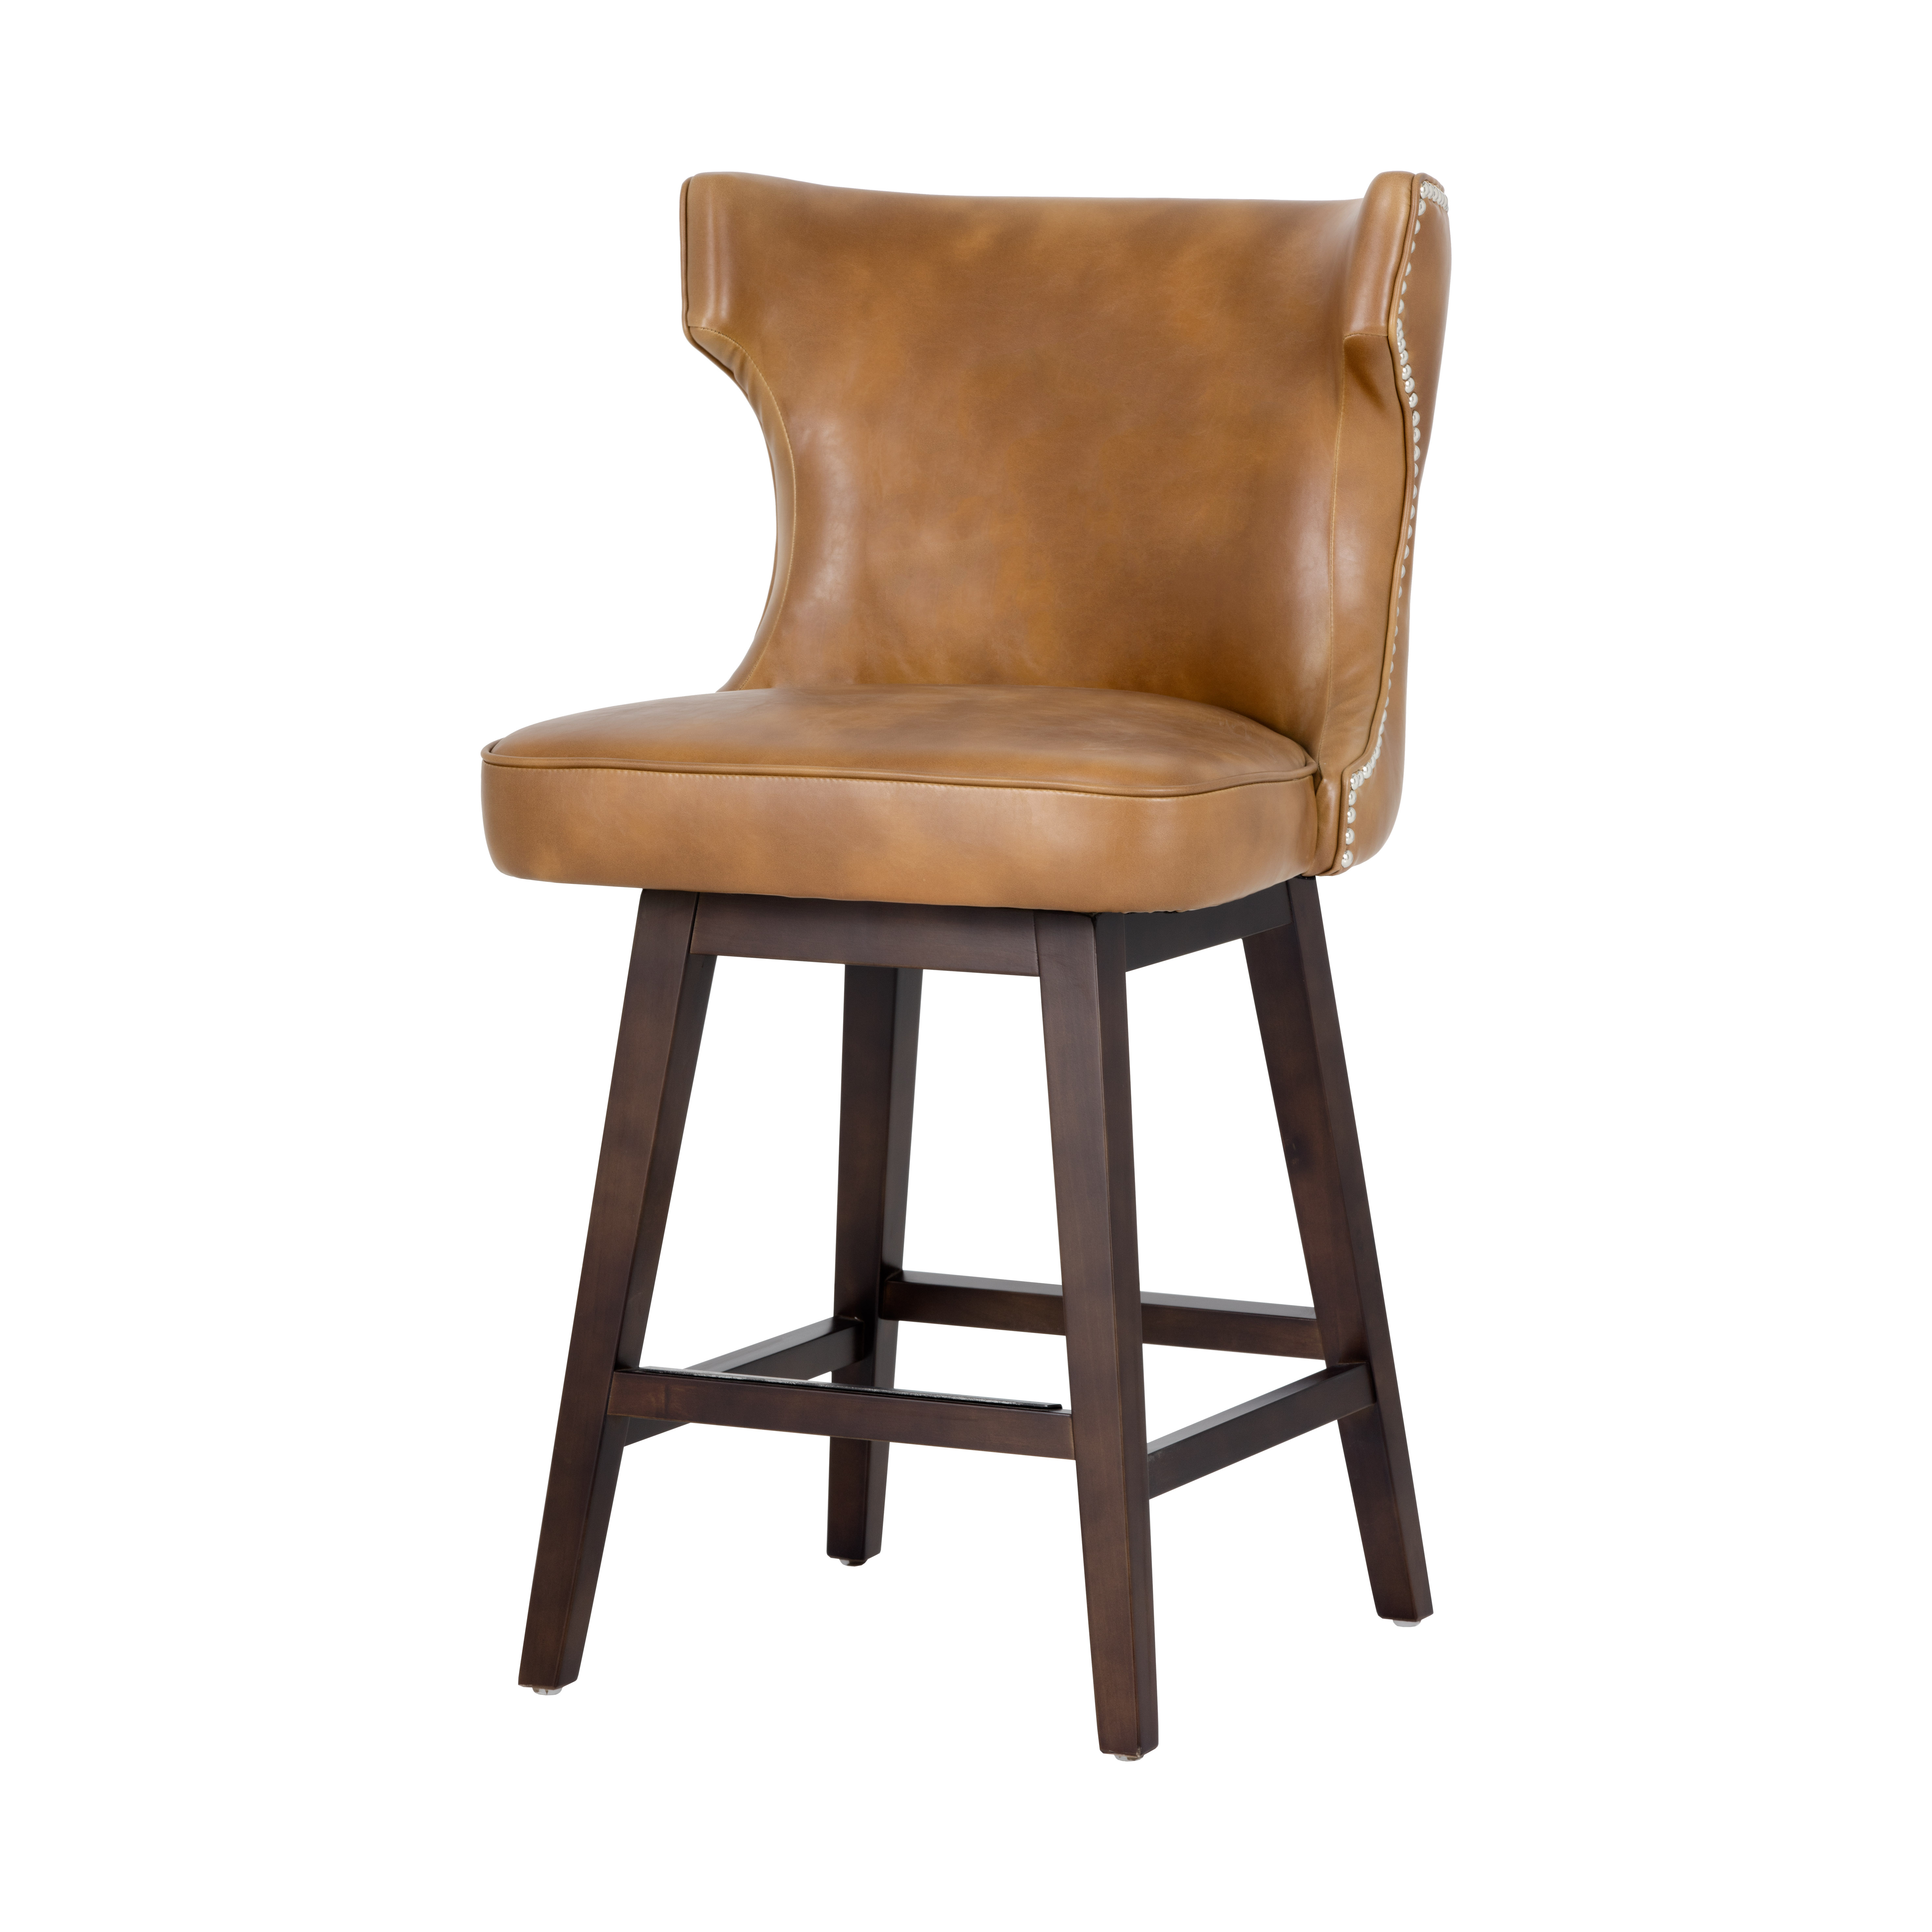 Latest Swivel Tobacco Leather Chairs In Neville Swivel Counter Stool – Tobacco Tansunpan Furniture (Gallery 12 of 20)